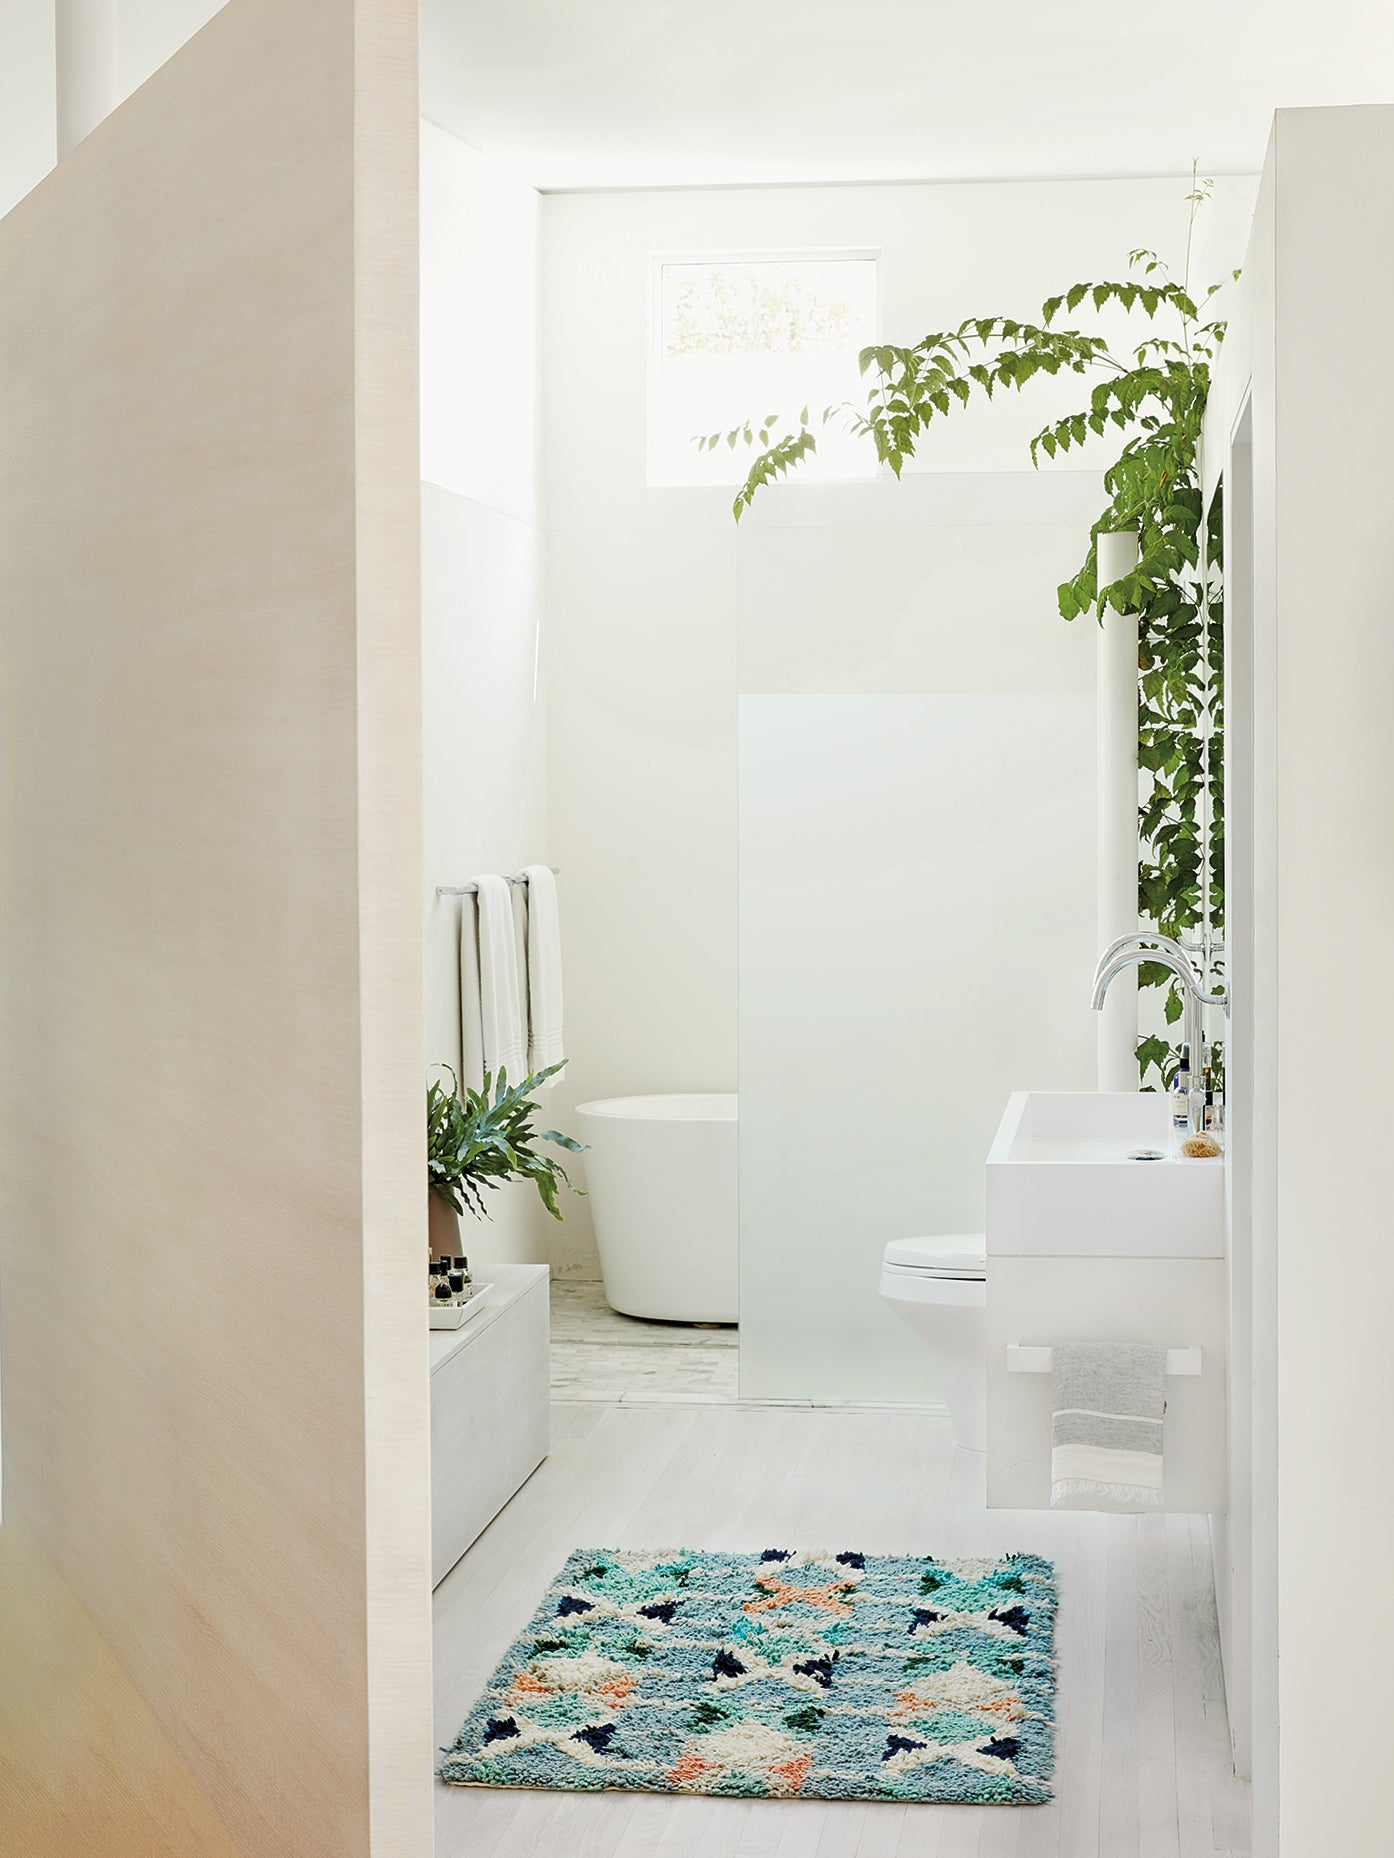 Touchless-bathroom-faucets-toilet-options-domino